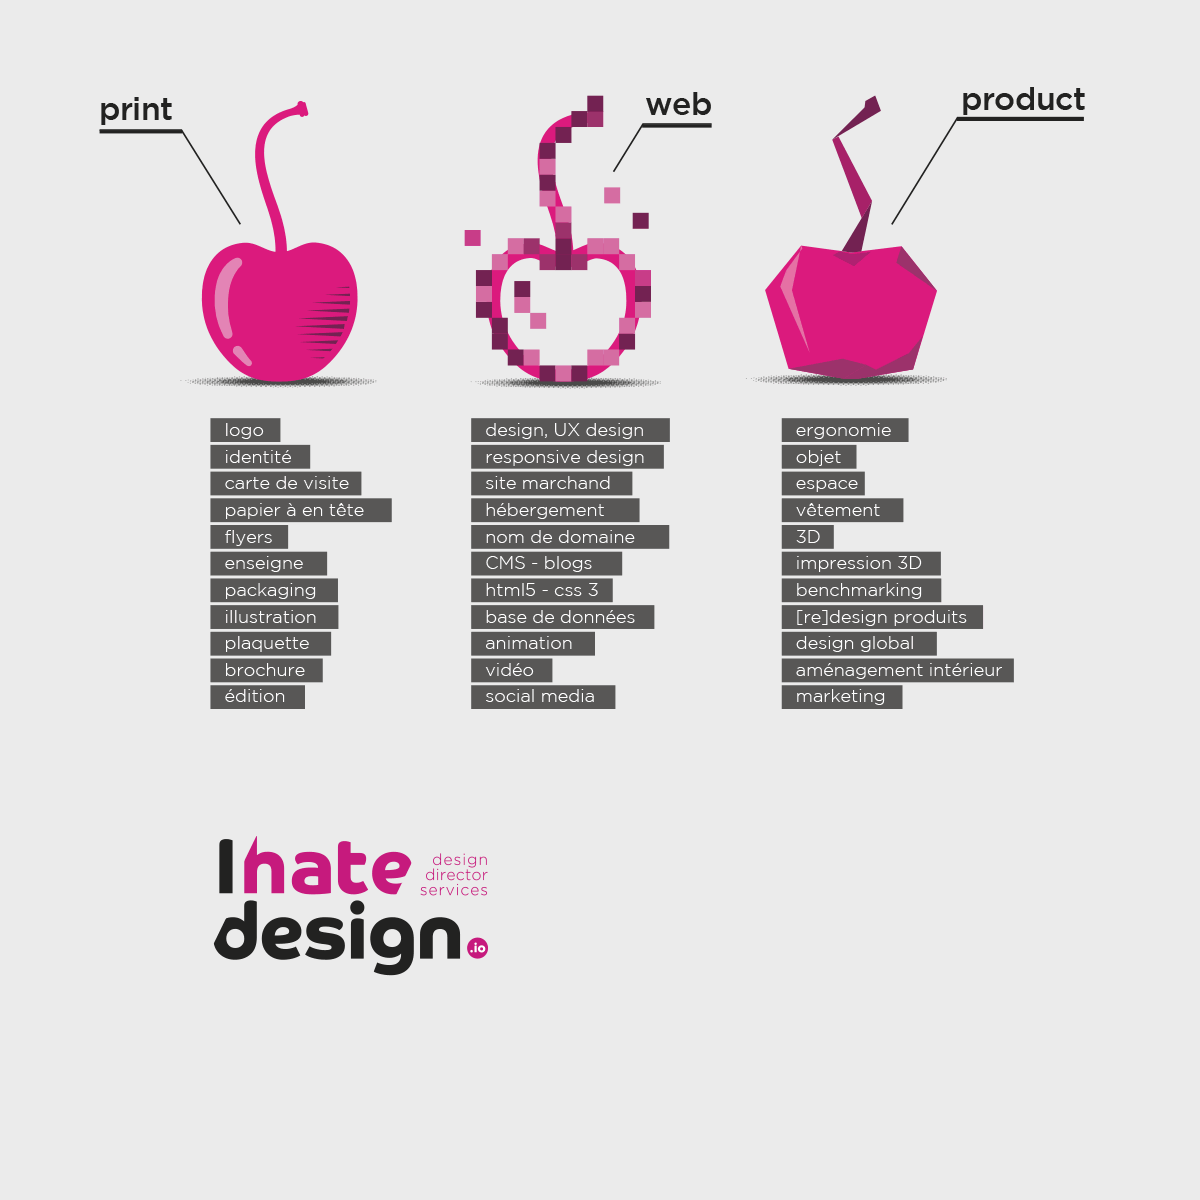 ihd-ihatedesign-services-1